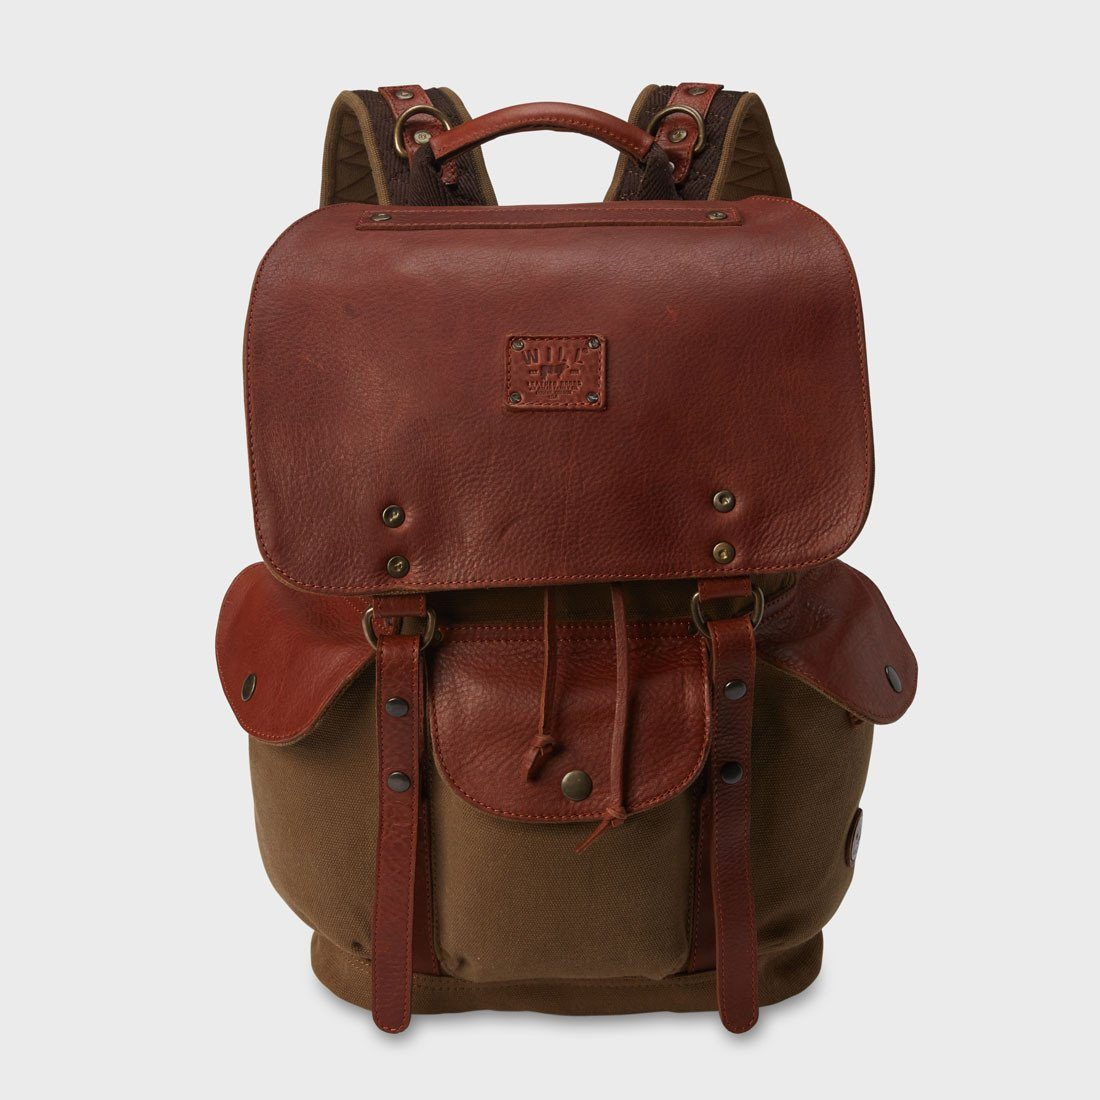 Will Leather Goods Lennon Backpack Tobacco